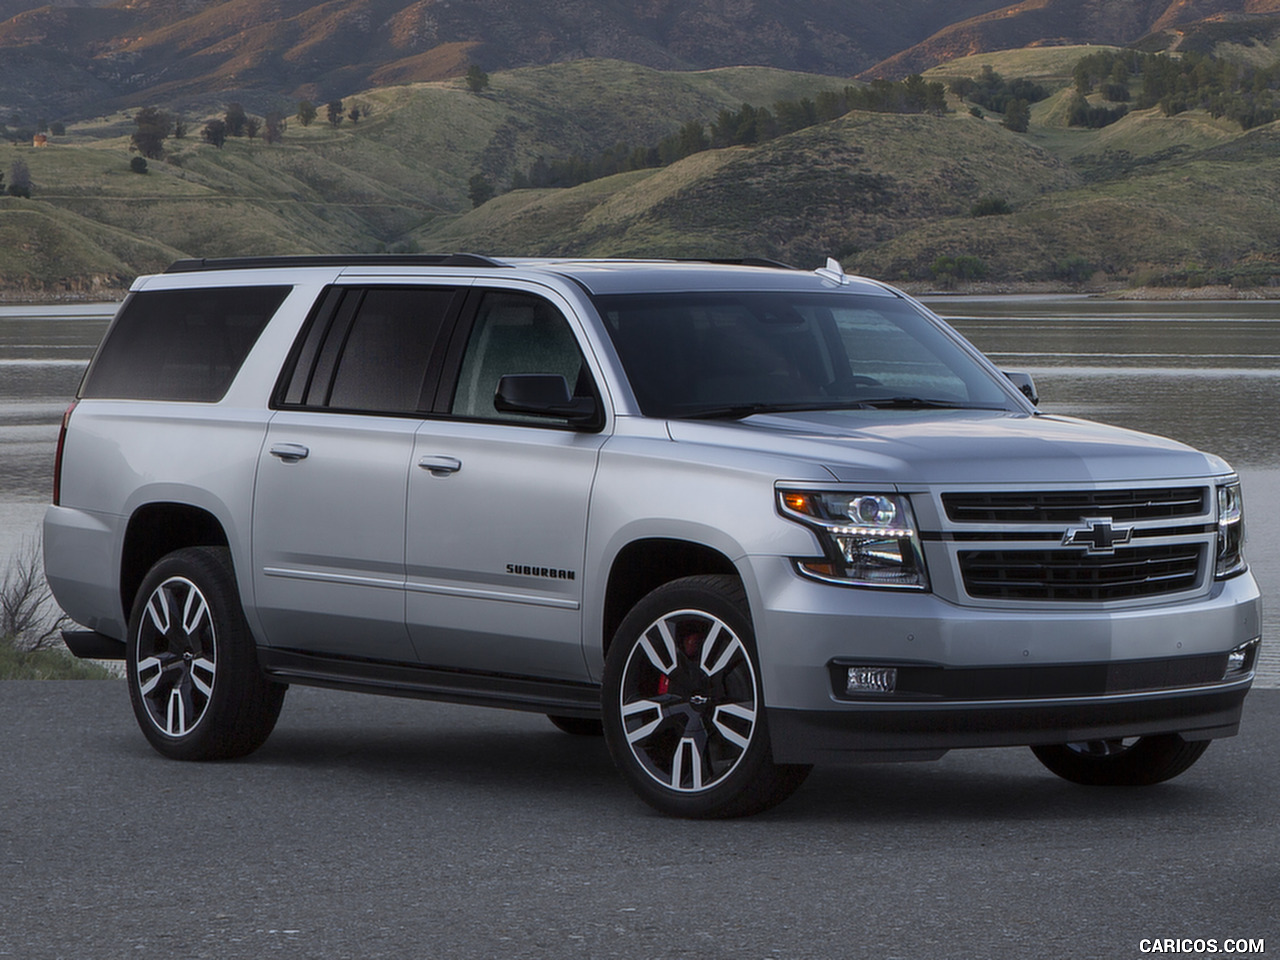 2019_chevrolet_suburban_rst_performance_package_1_1280x960